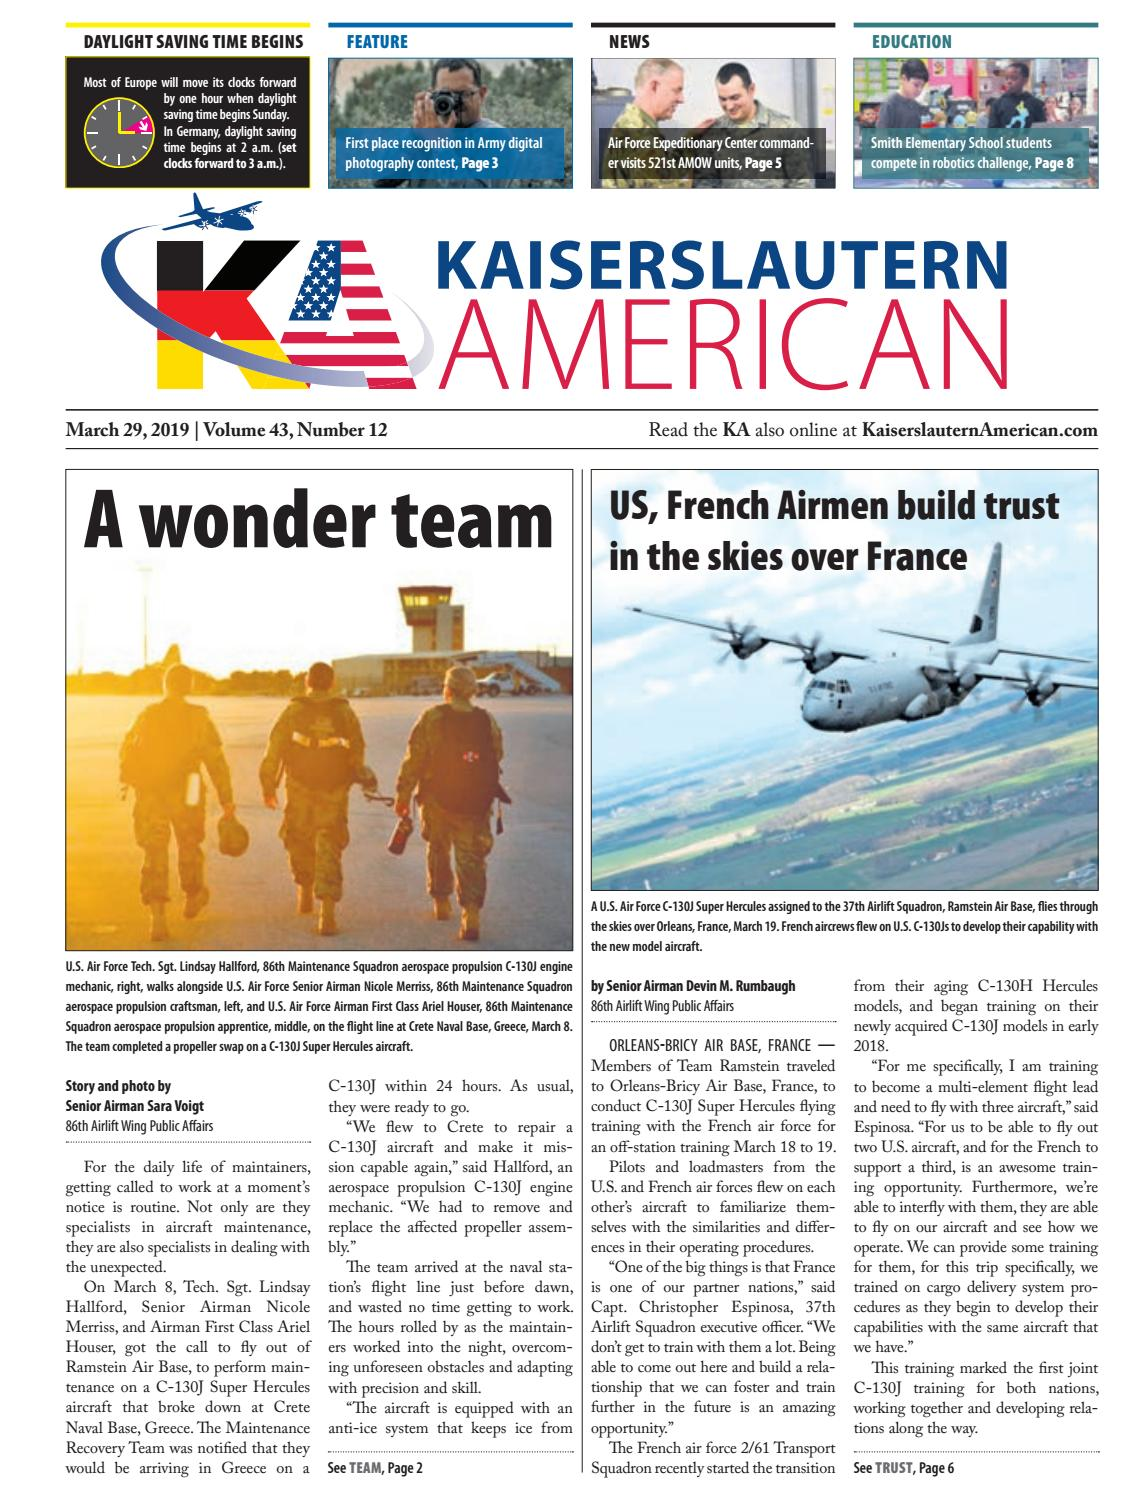 Kaiserslautern American, March 29, 2019 by AdvantiPro GmbH - issuu